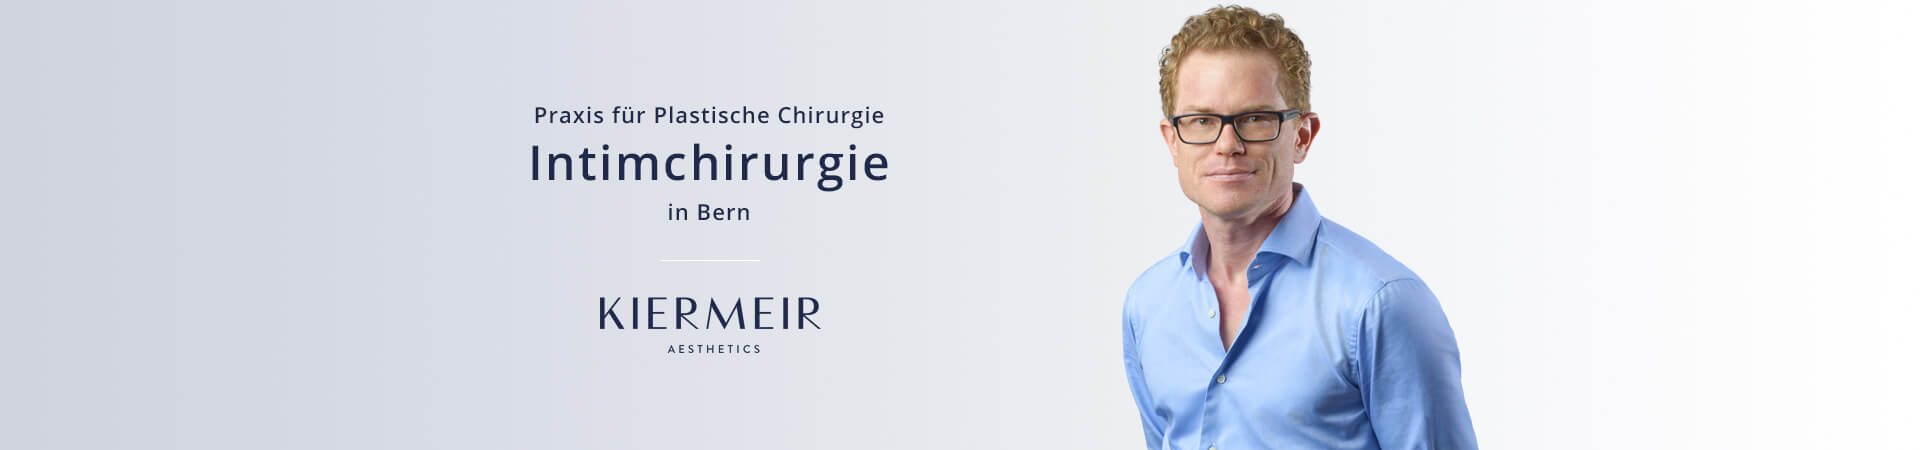 Intimchirurgie in Bern - Dr. David Kiermeir